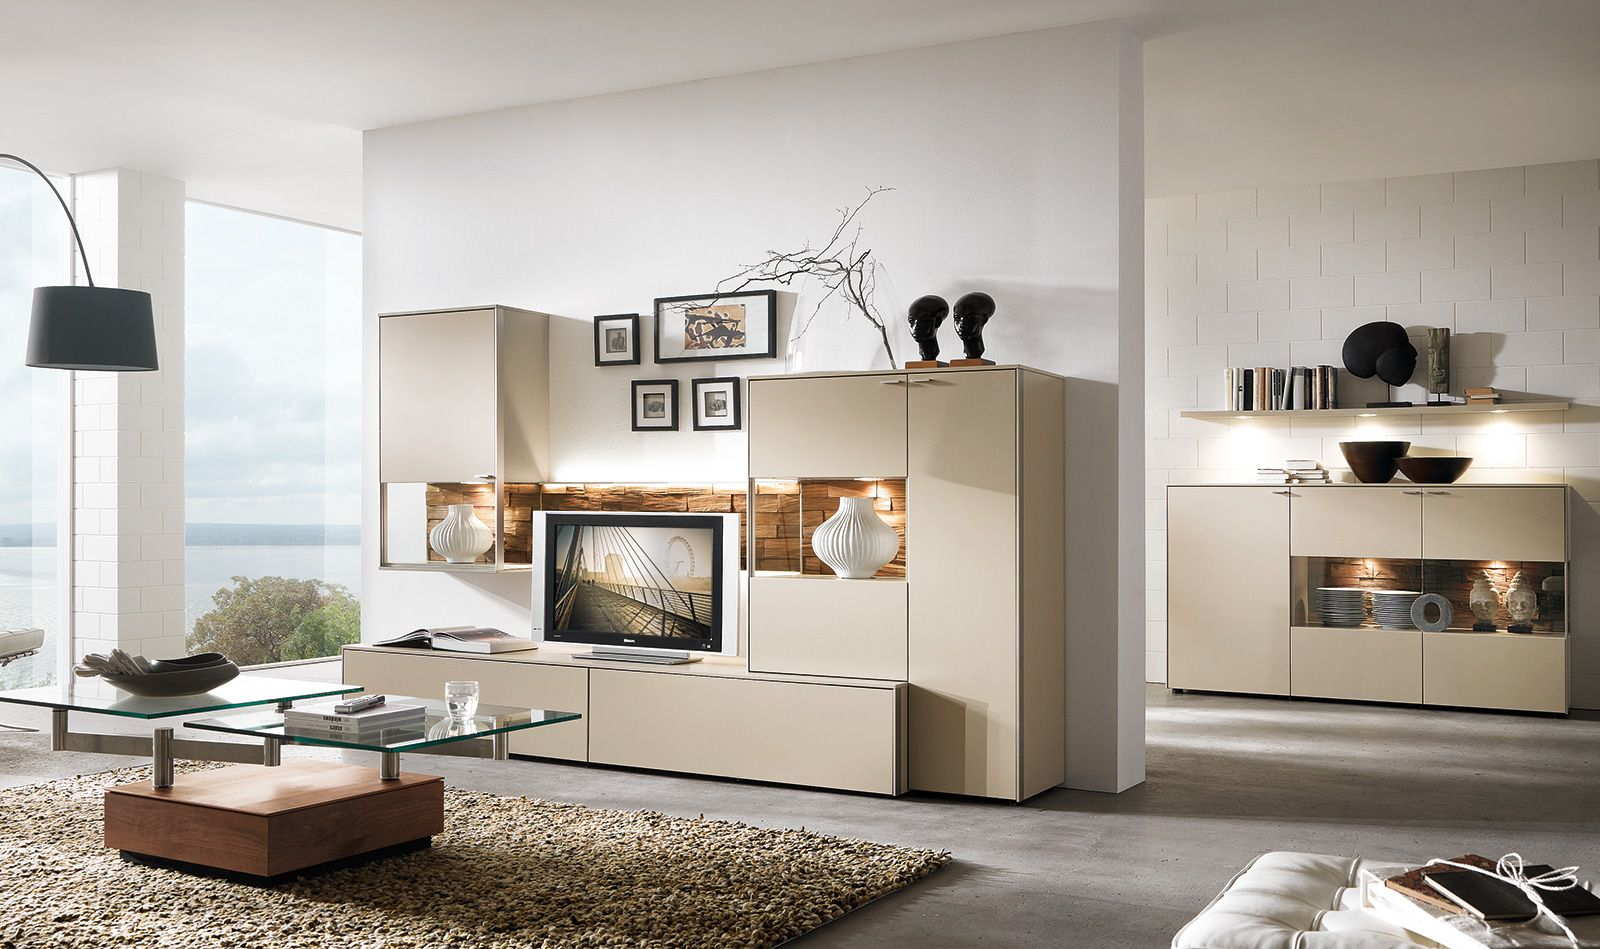 sentino programme wohnzimmer venjakob m bel ideen rund ums wohnen pinterest venjakob. Black Bedroom Furniture Sets. Home Design Ideas